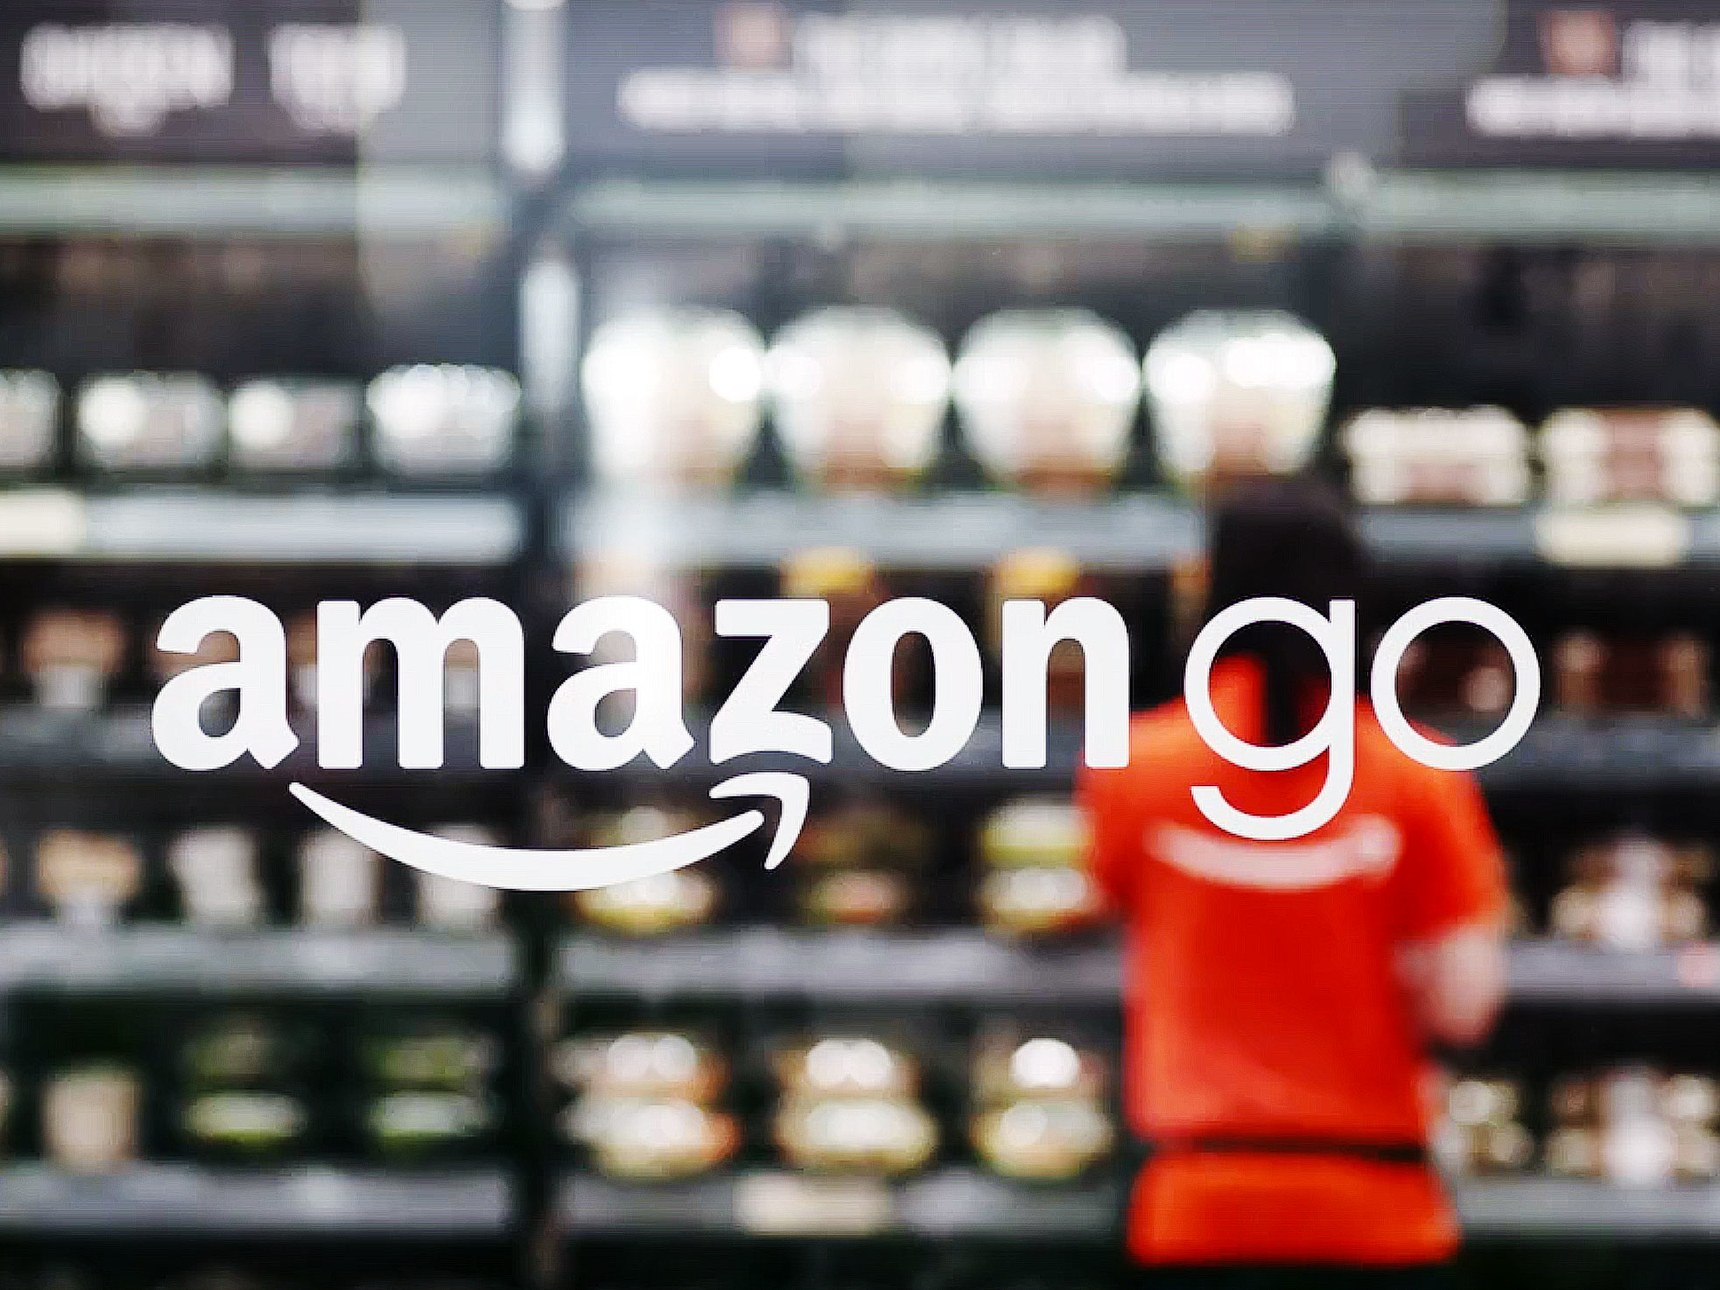 Amazon-Go-Revolution